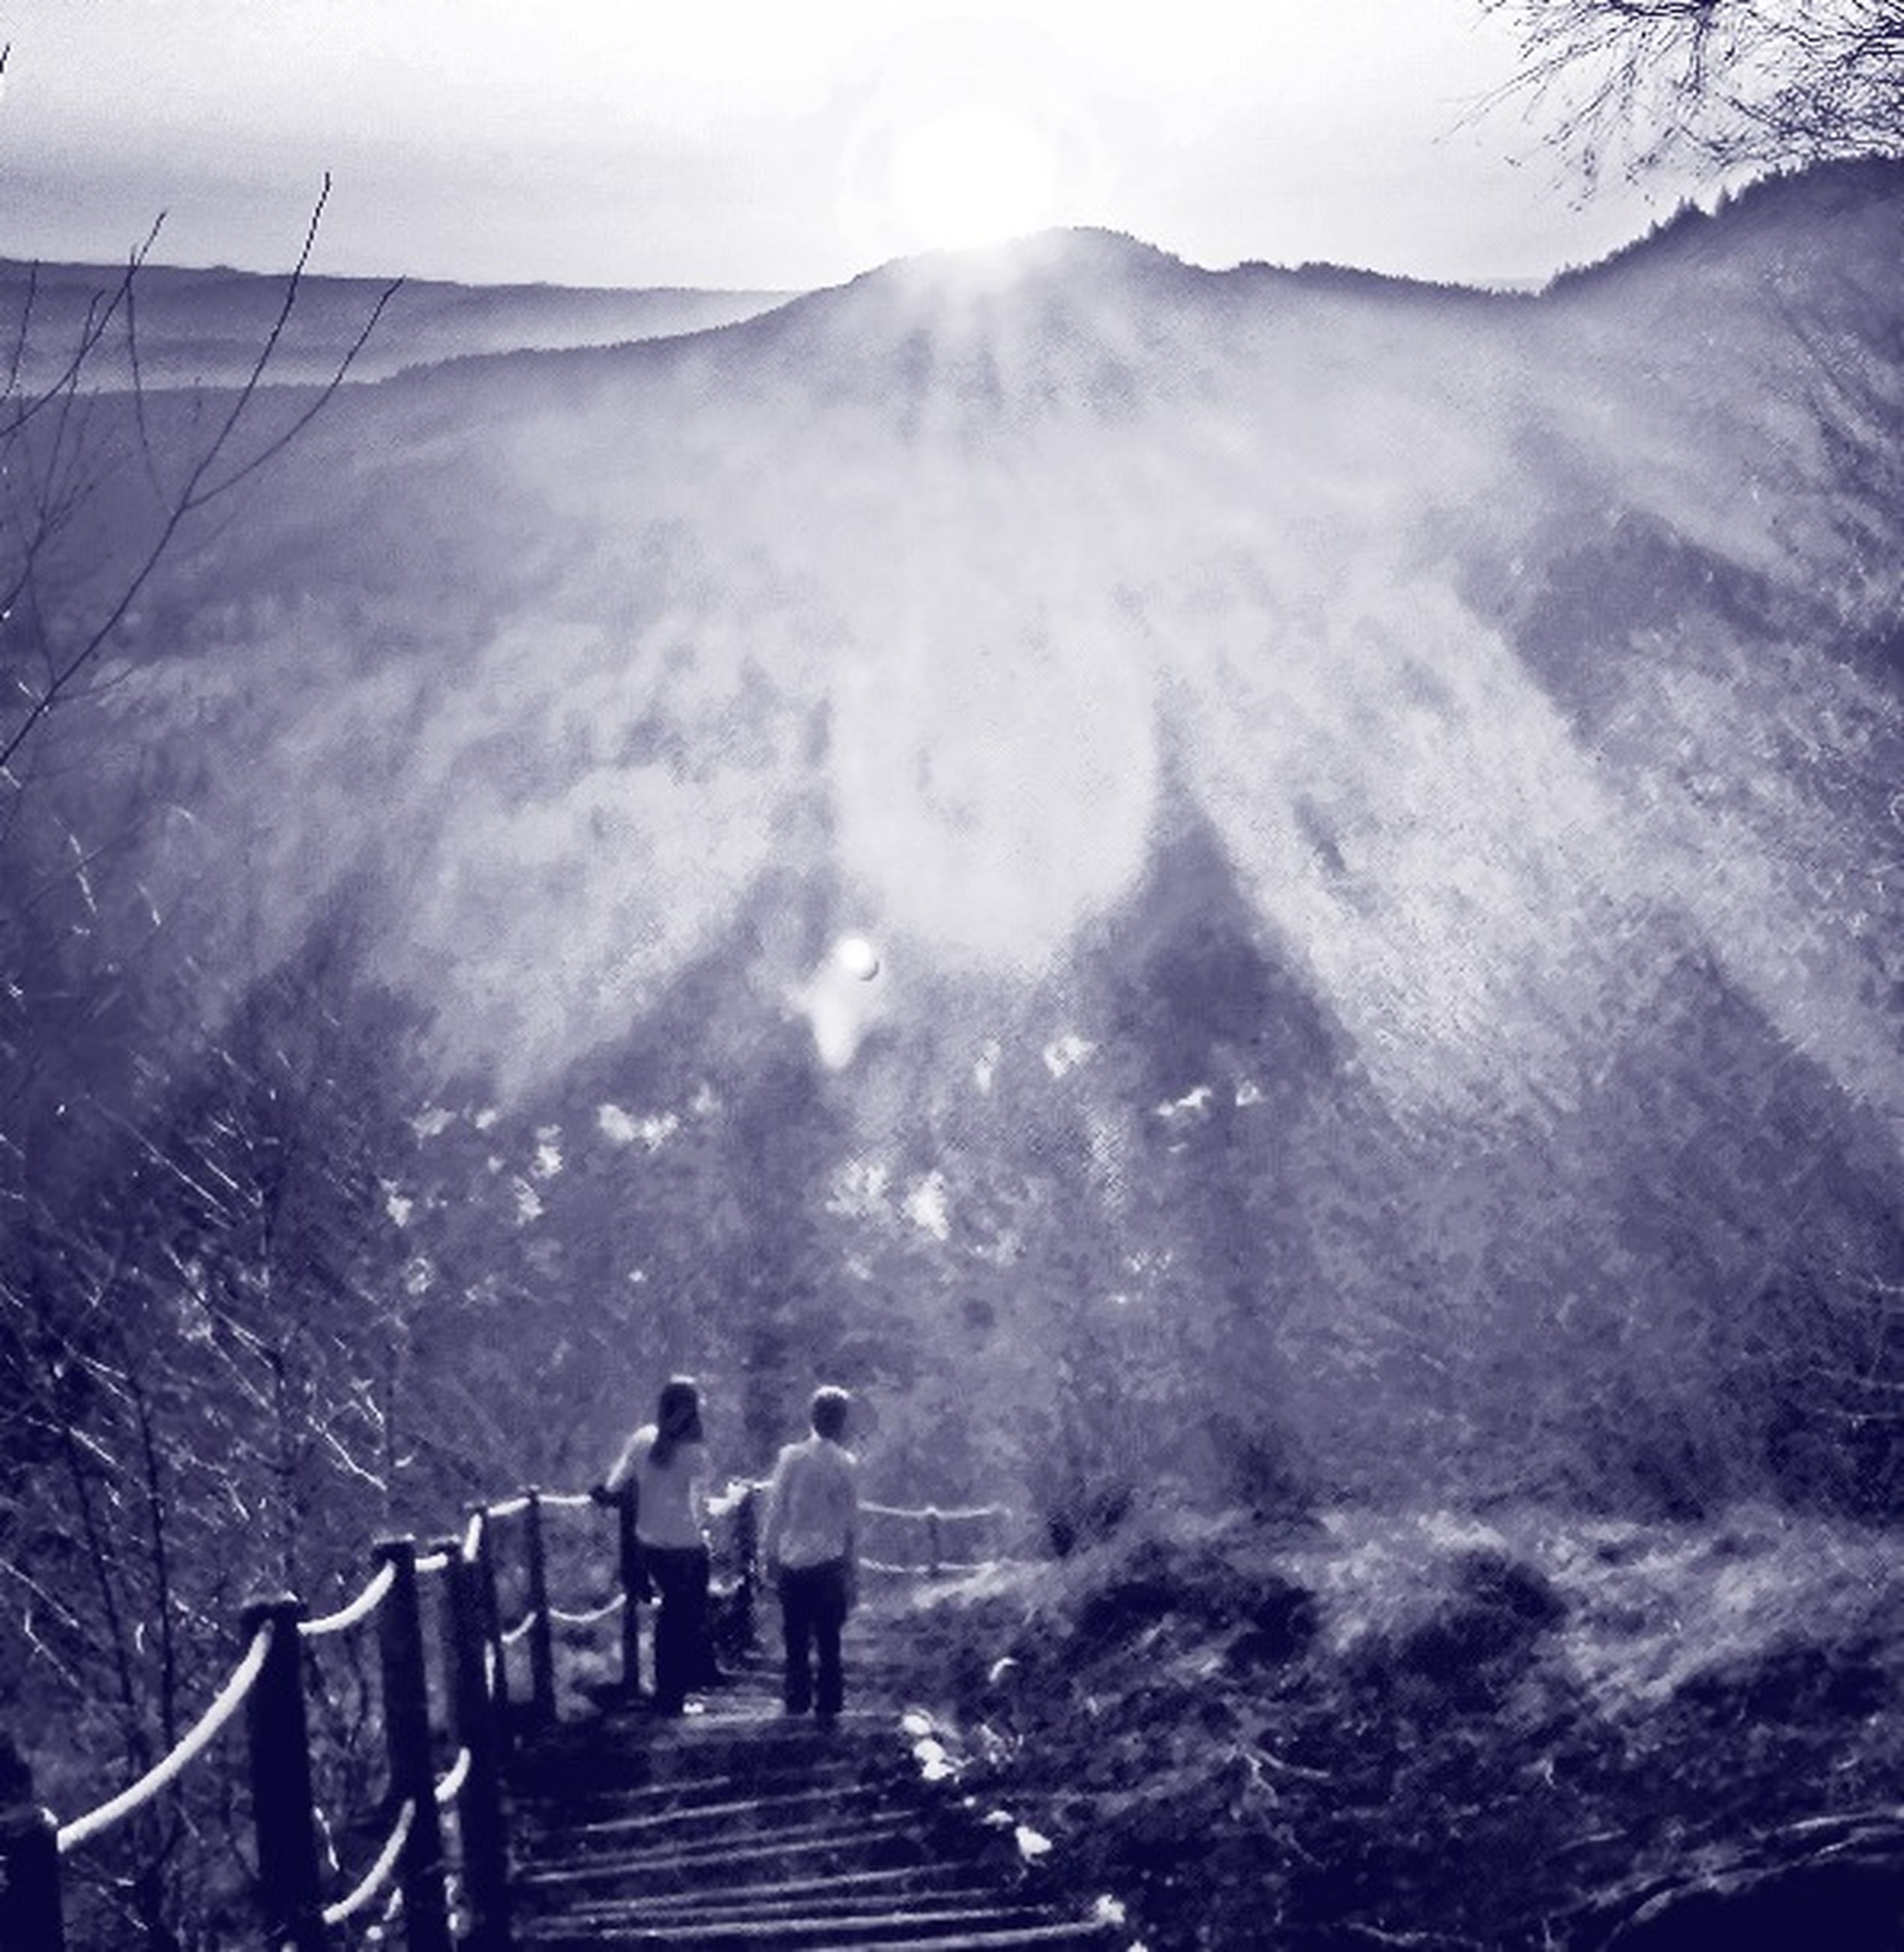 mountain, fog, lifestyles, railing, foggy, men, steps, tranquility, leisure activity, weather, scenics, tranquil scene, nature, winter, beauty in nature, tree, the way forward, person, tourism